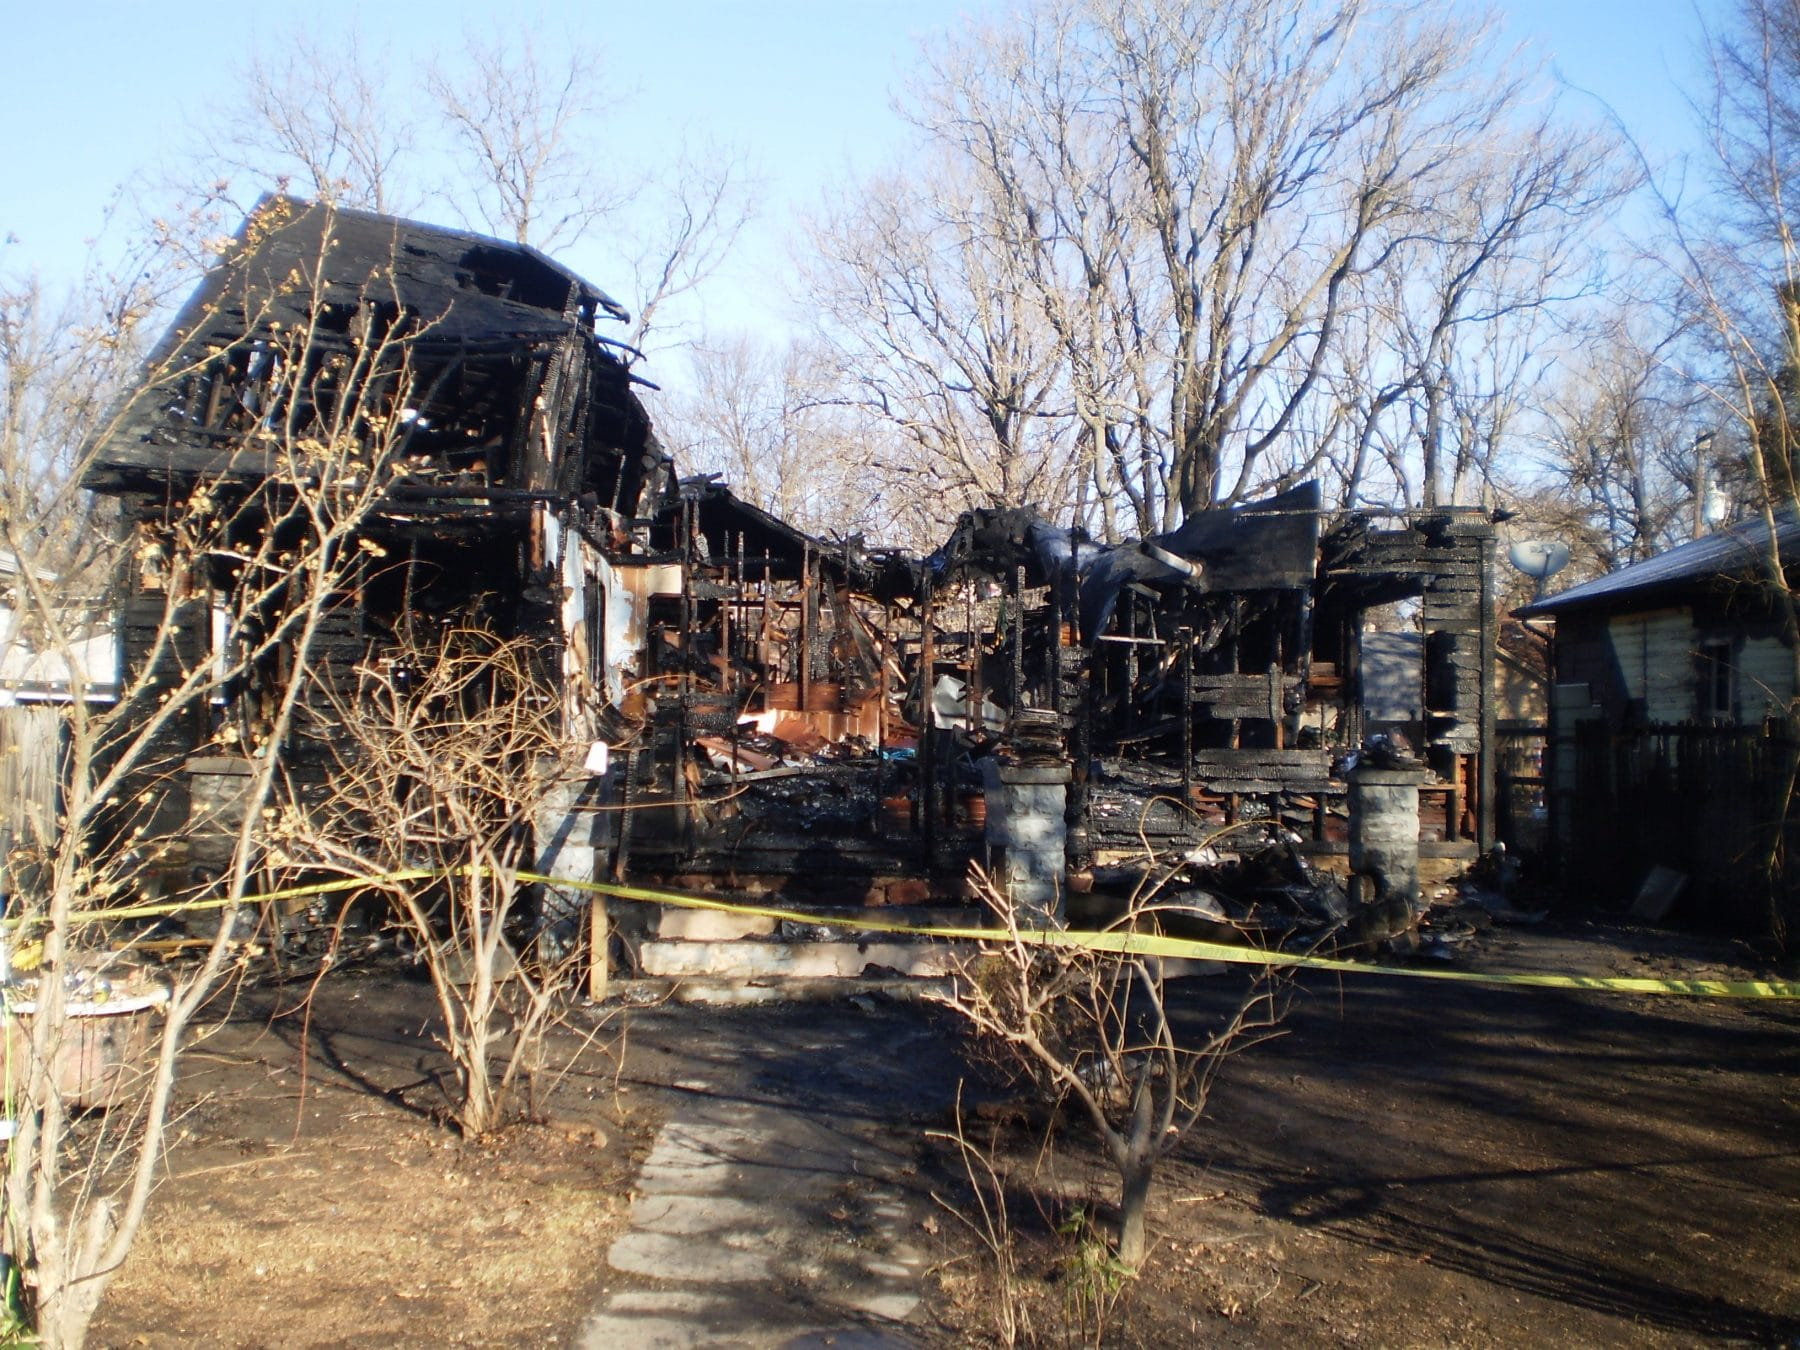 One person rescued in early morning structure fire